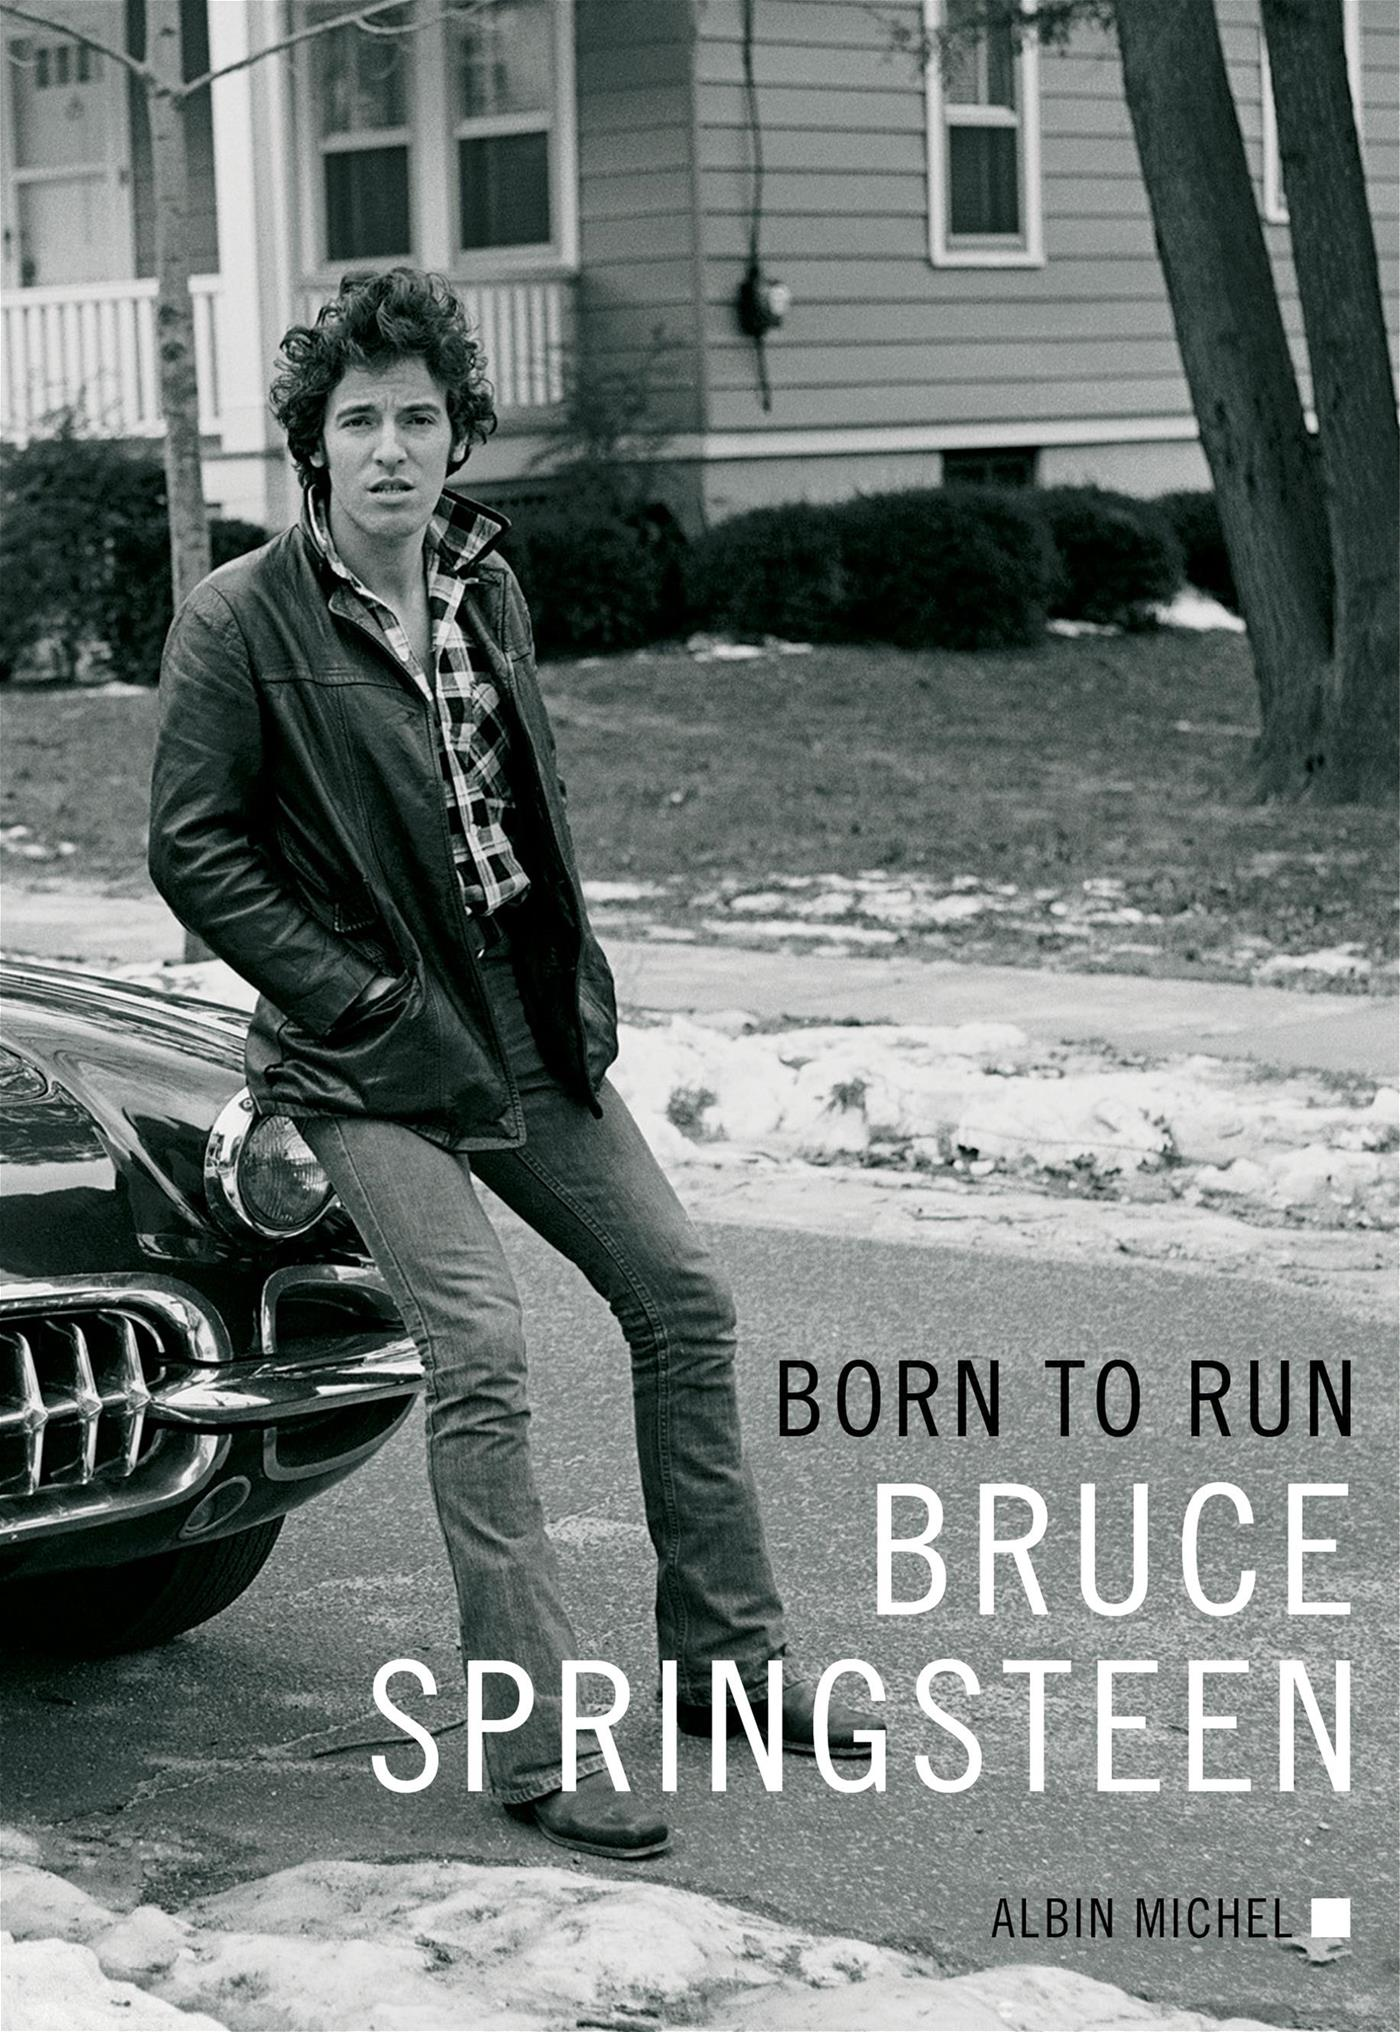 Born to run (Version Française)